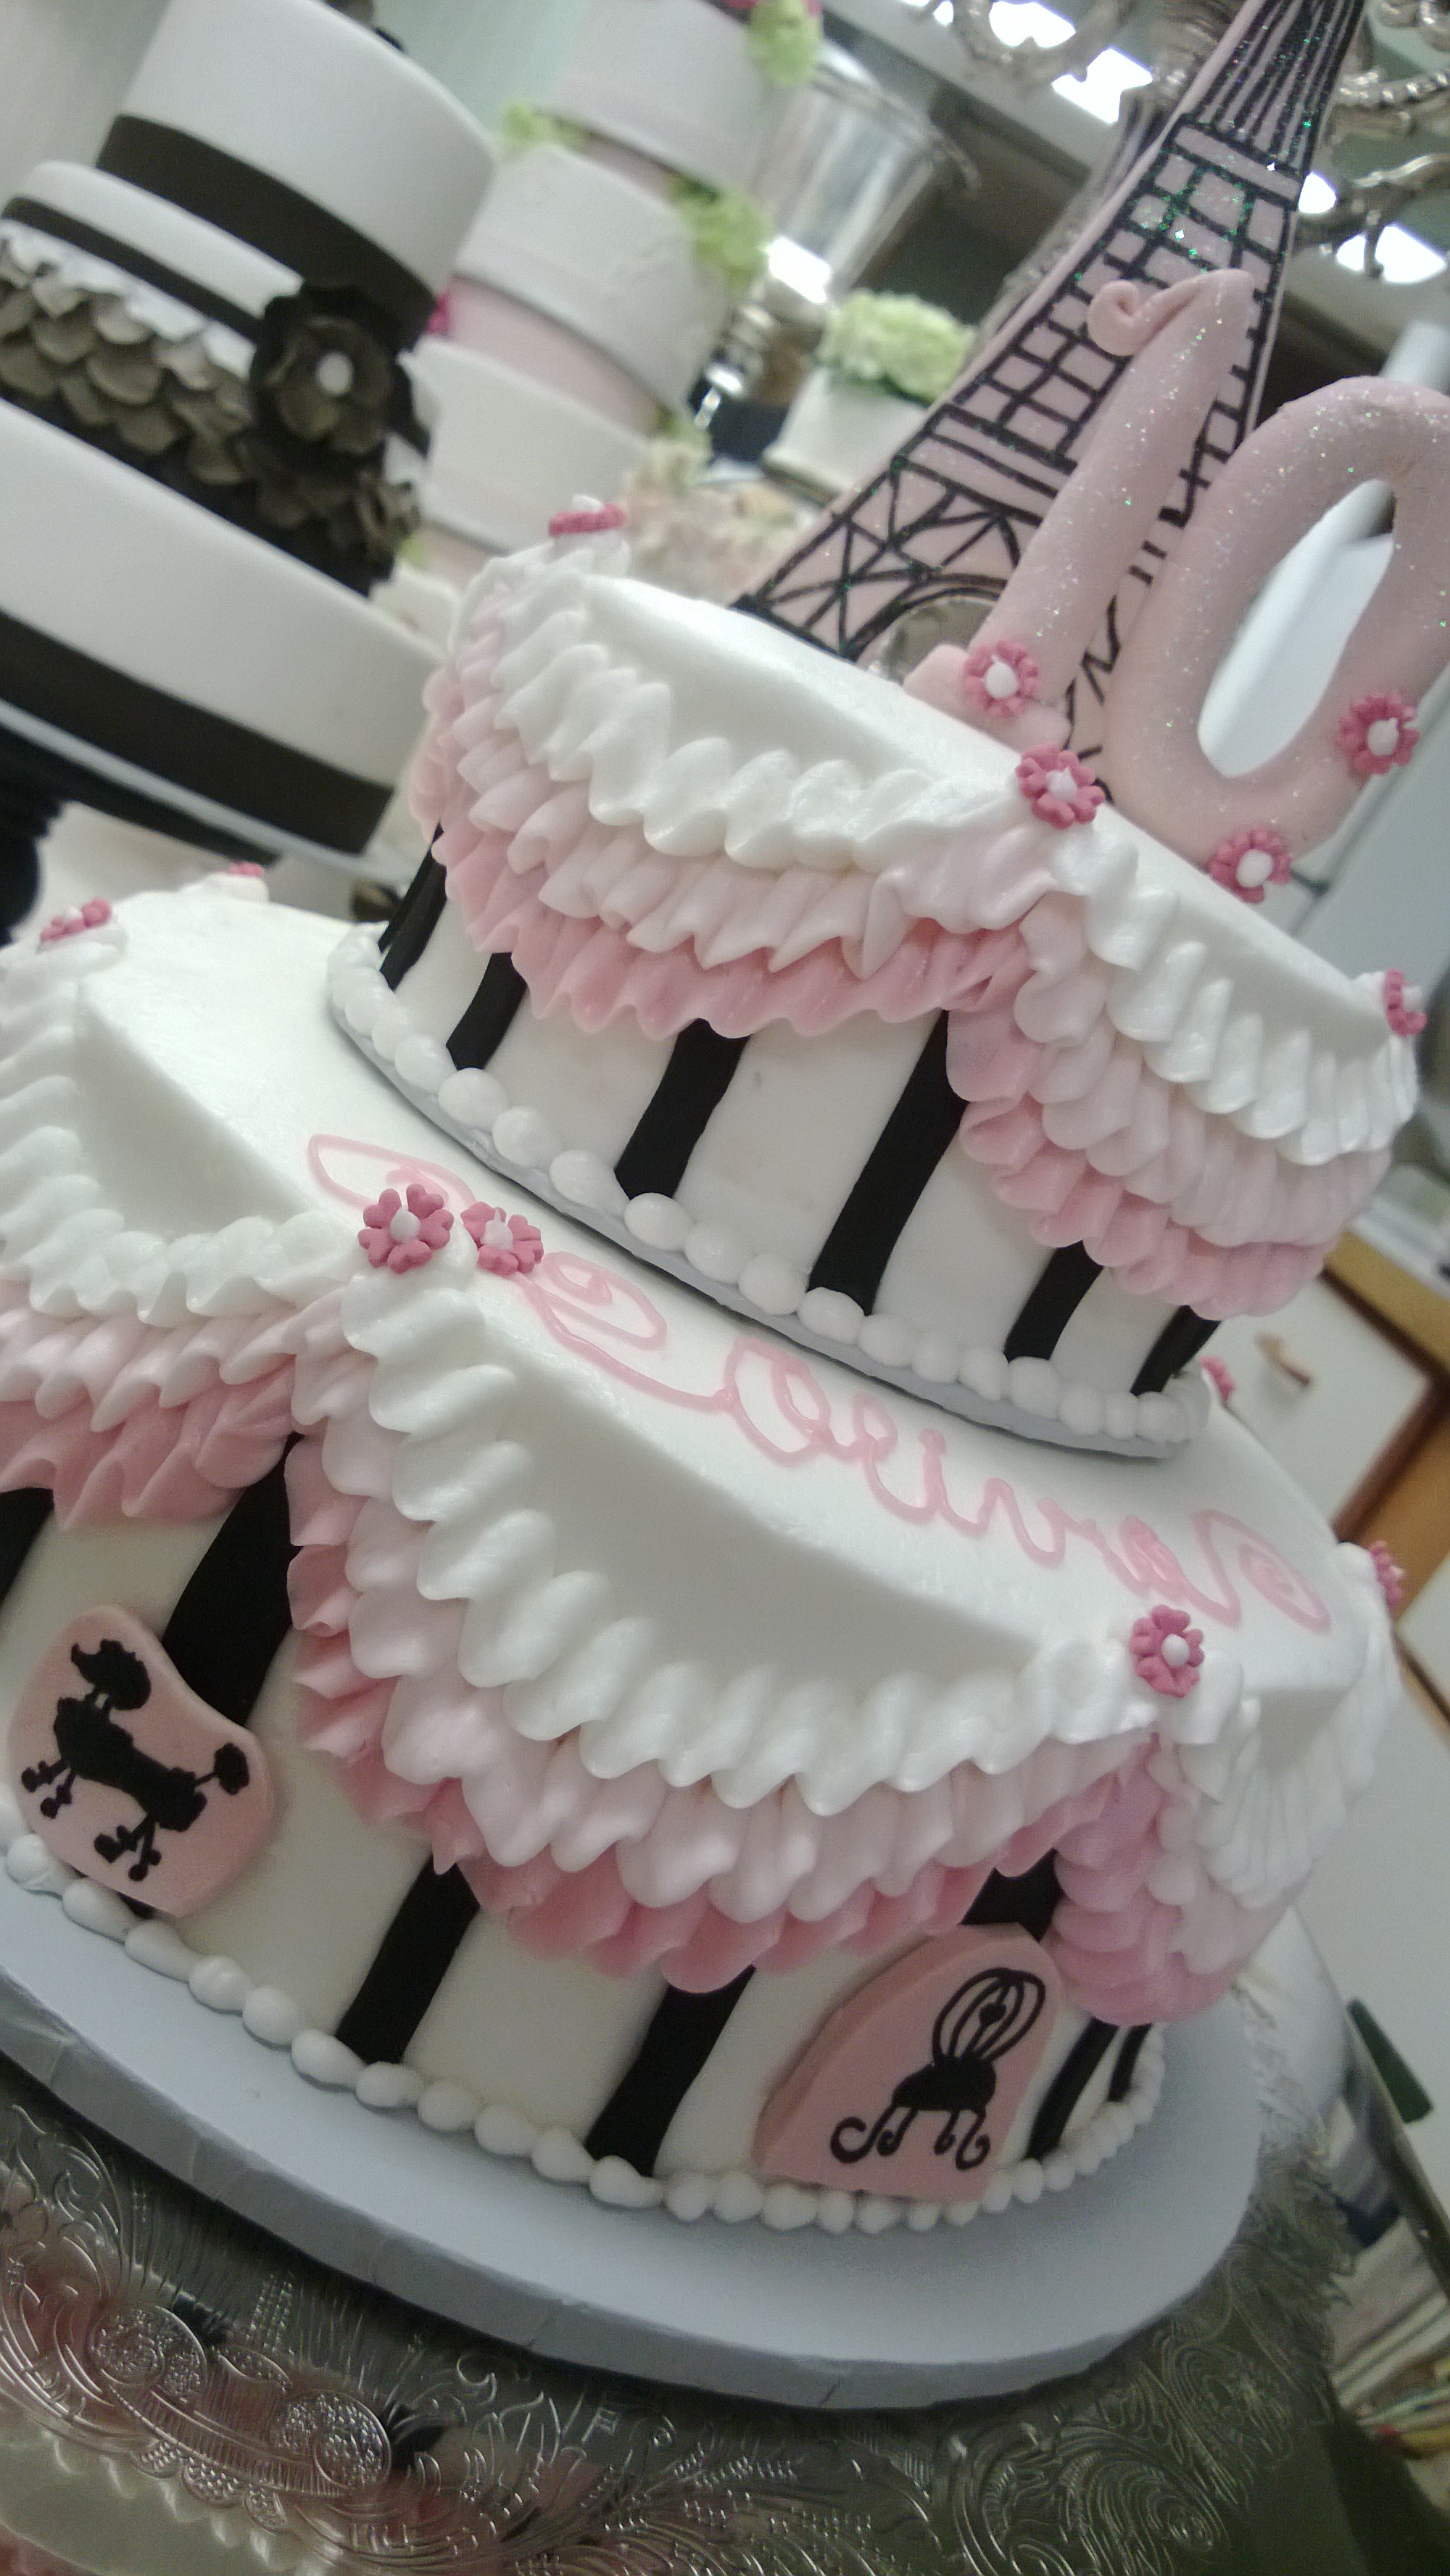 Paris Birthday Cakes Theme Cake Cakecentral Themed Sheet Hot Trending Now